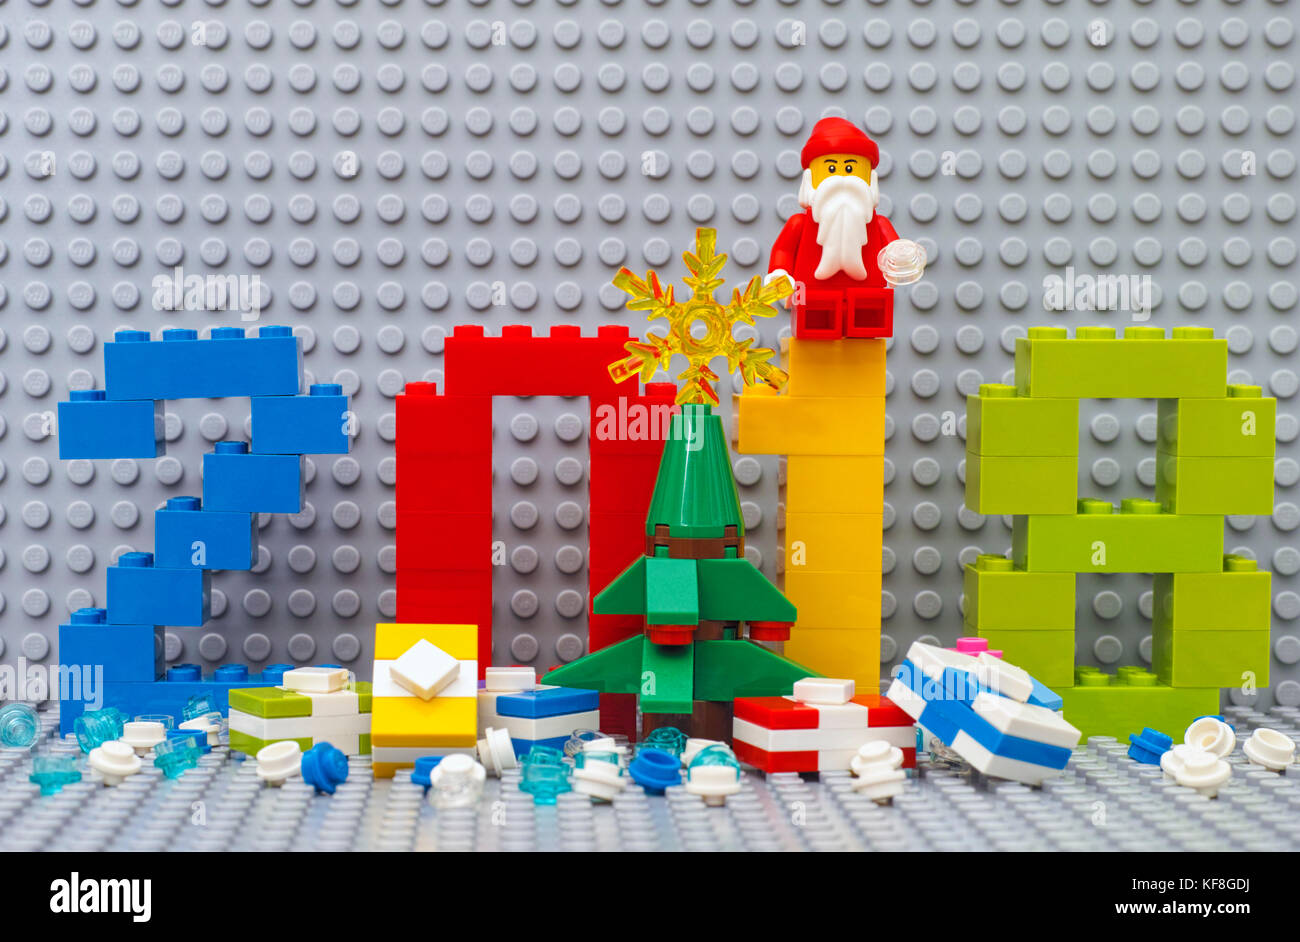 Tambov, Russian Federation - June 15, 2017  Lego New year 2018 concept. Numbers 2018, christmas tree, presents  - Stock Image